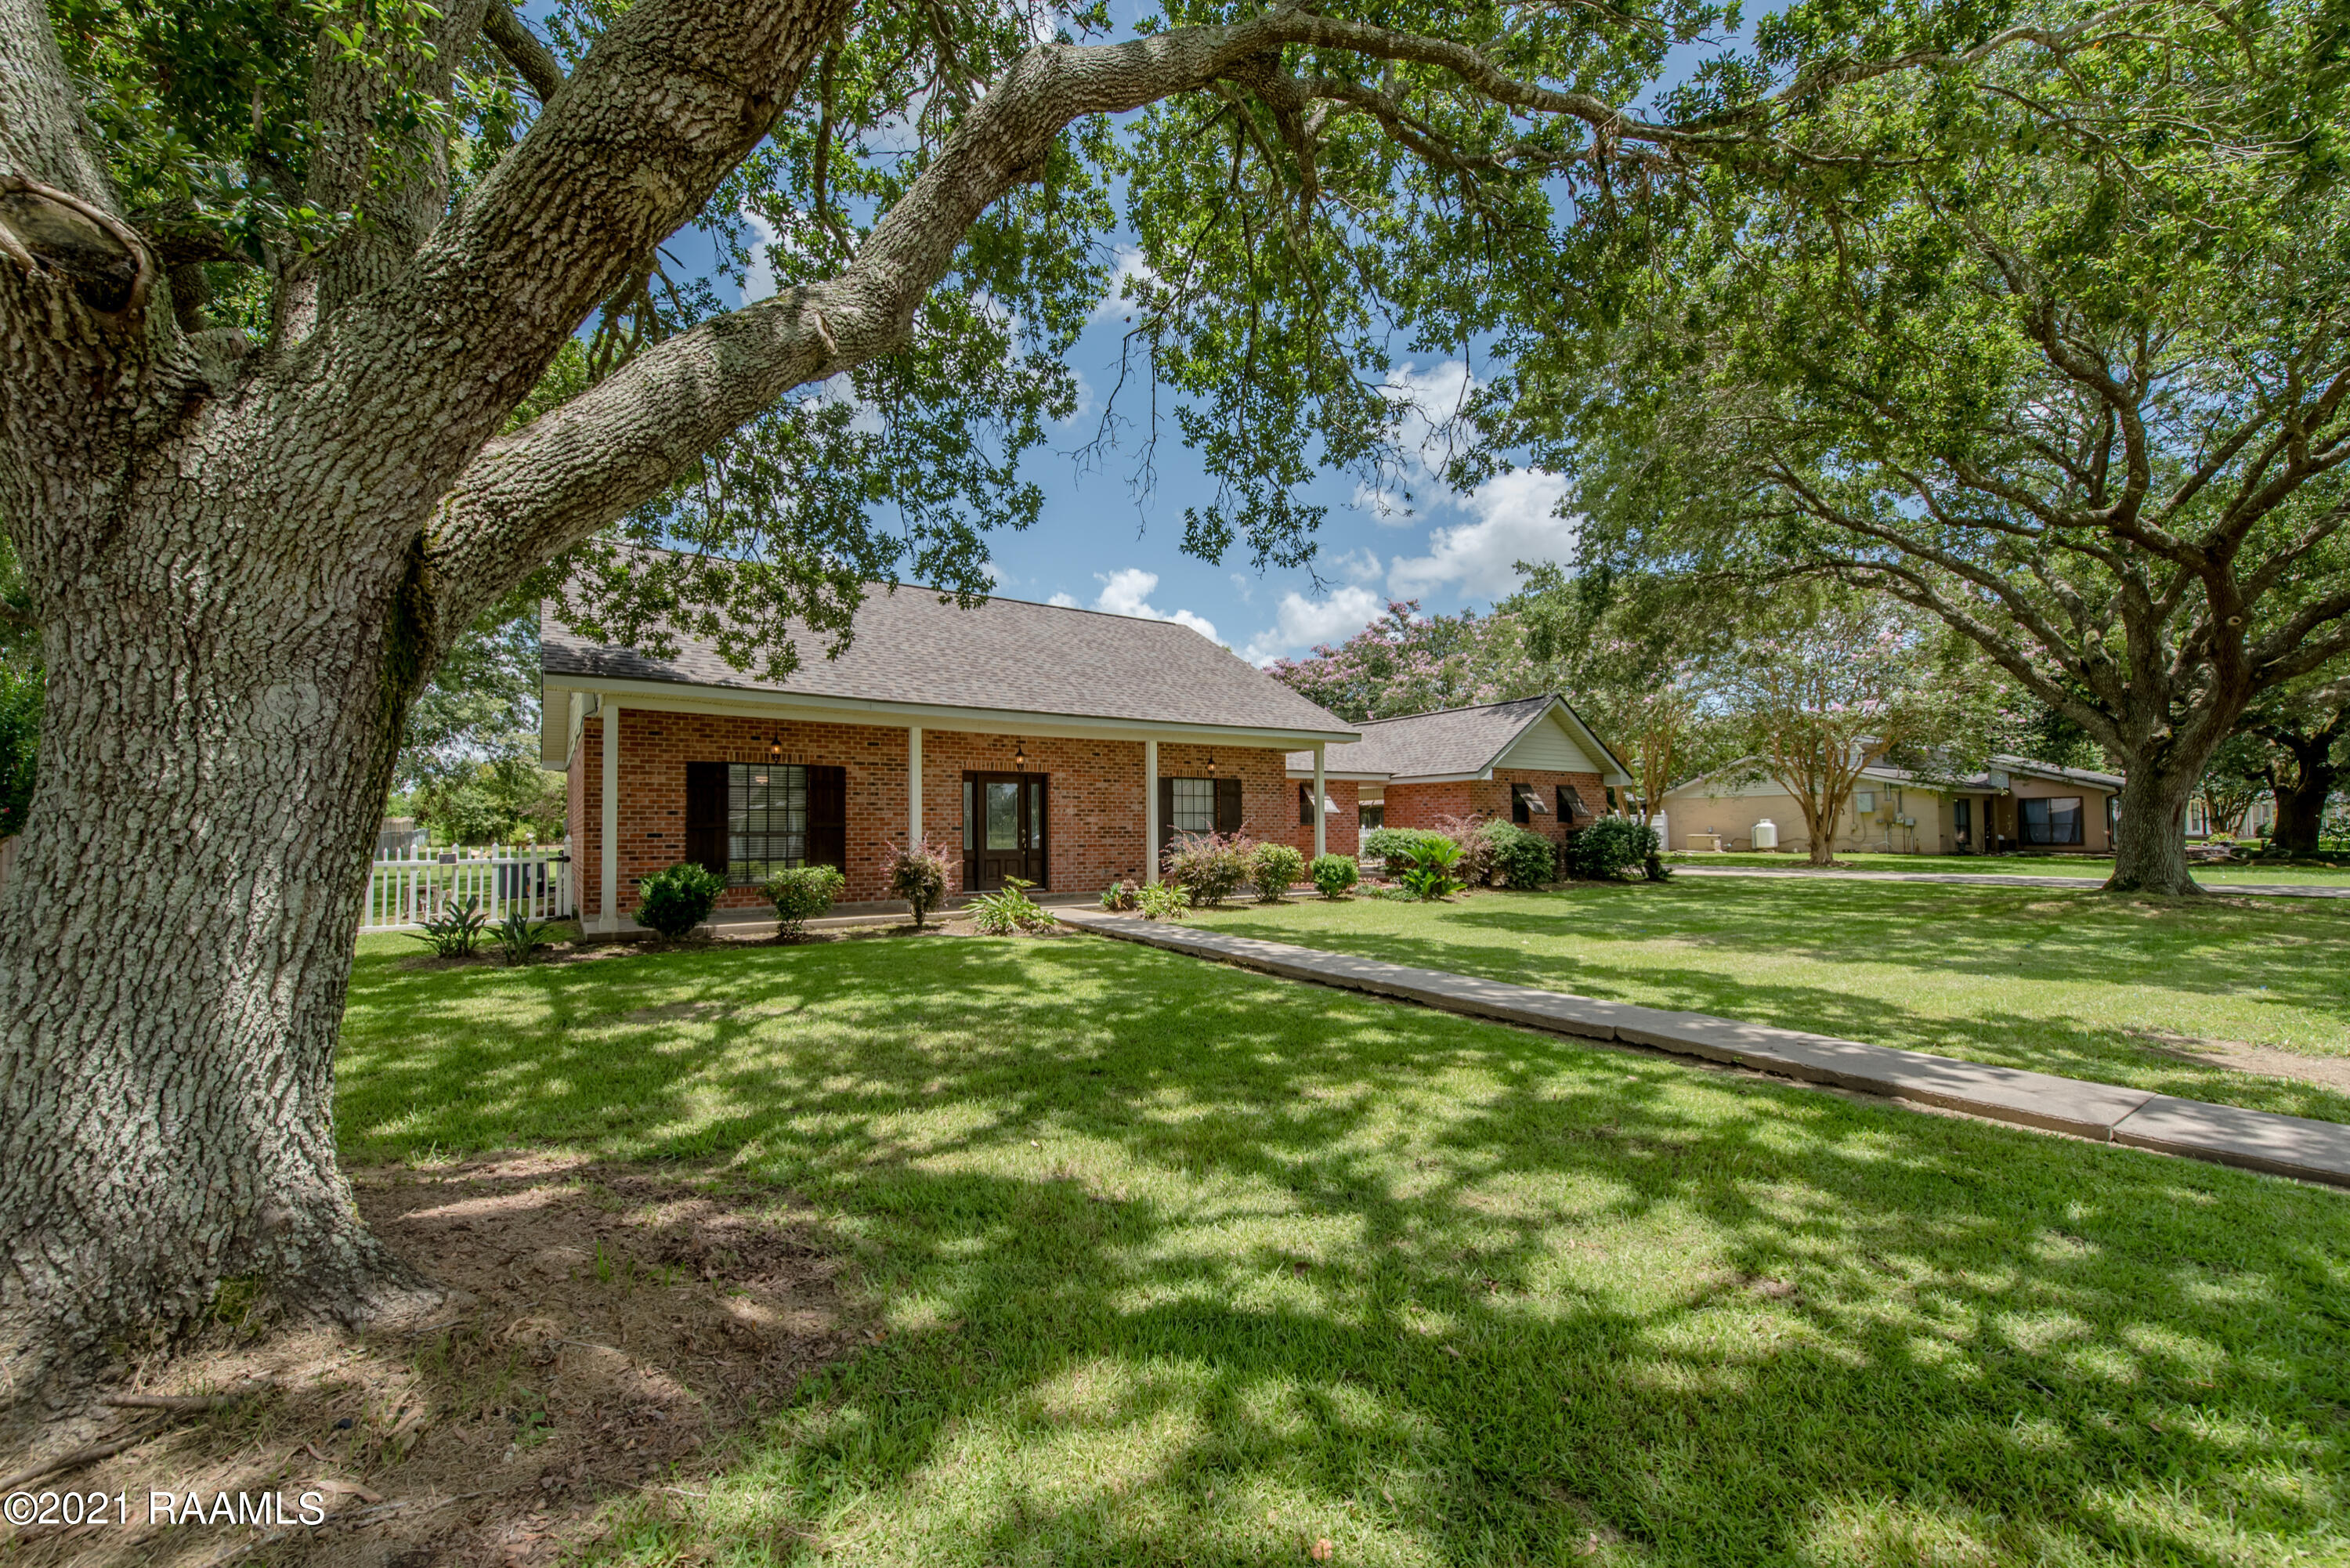 116 Countryview Drive, Youngsville, LA 70592 Photo #2